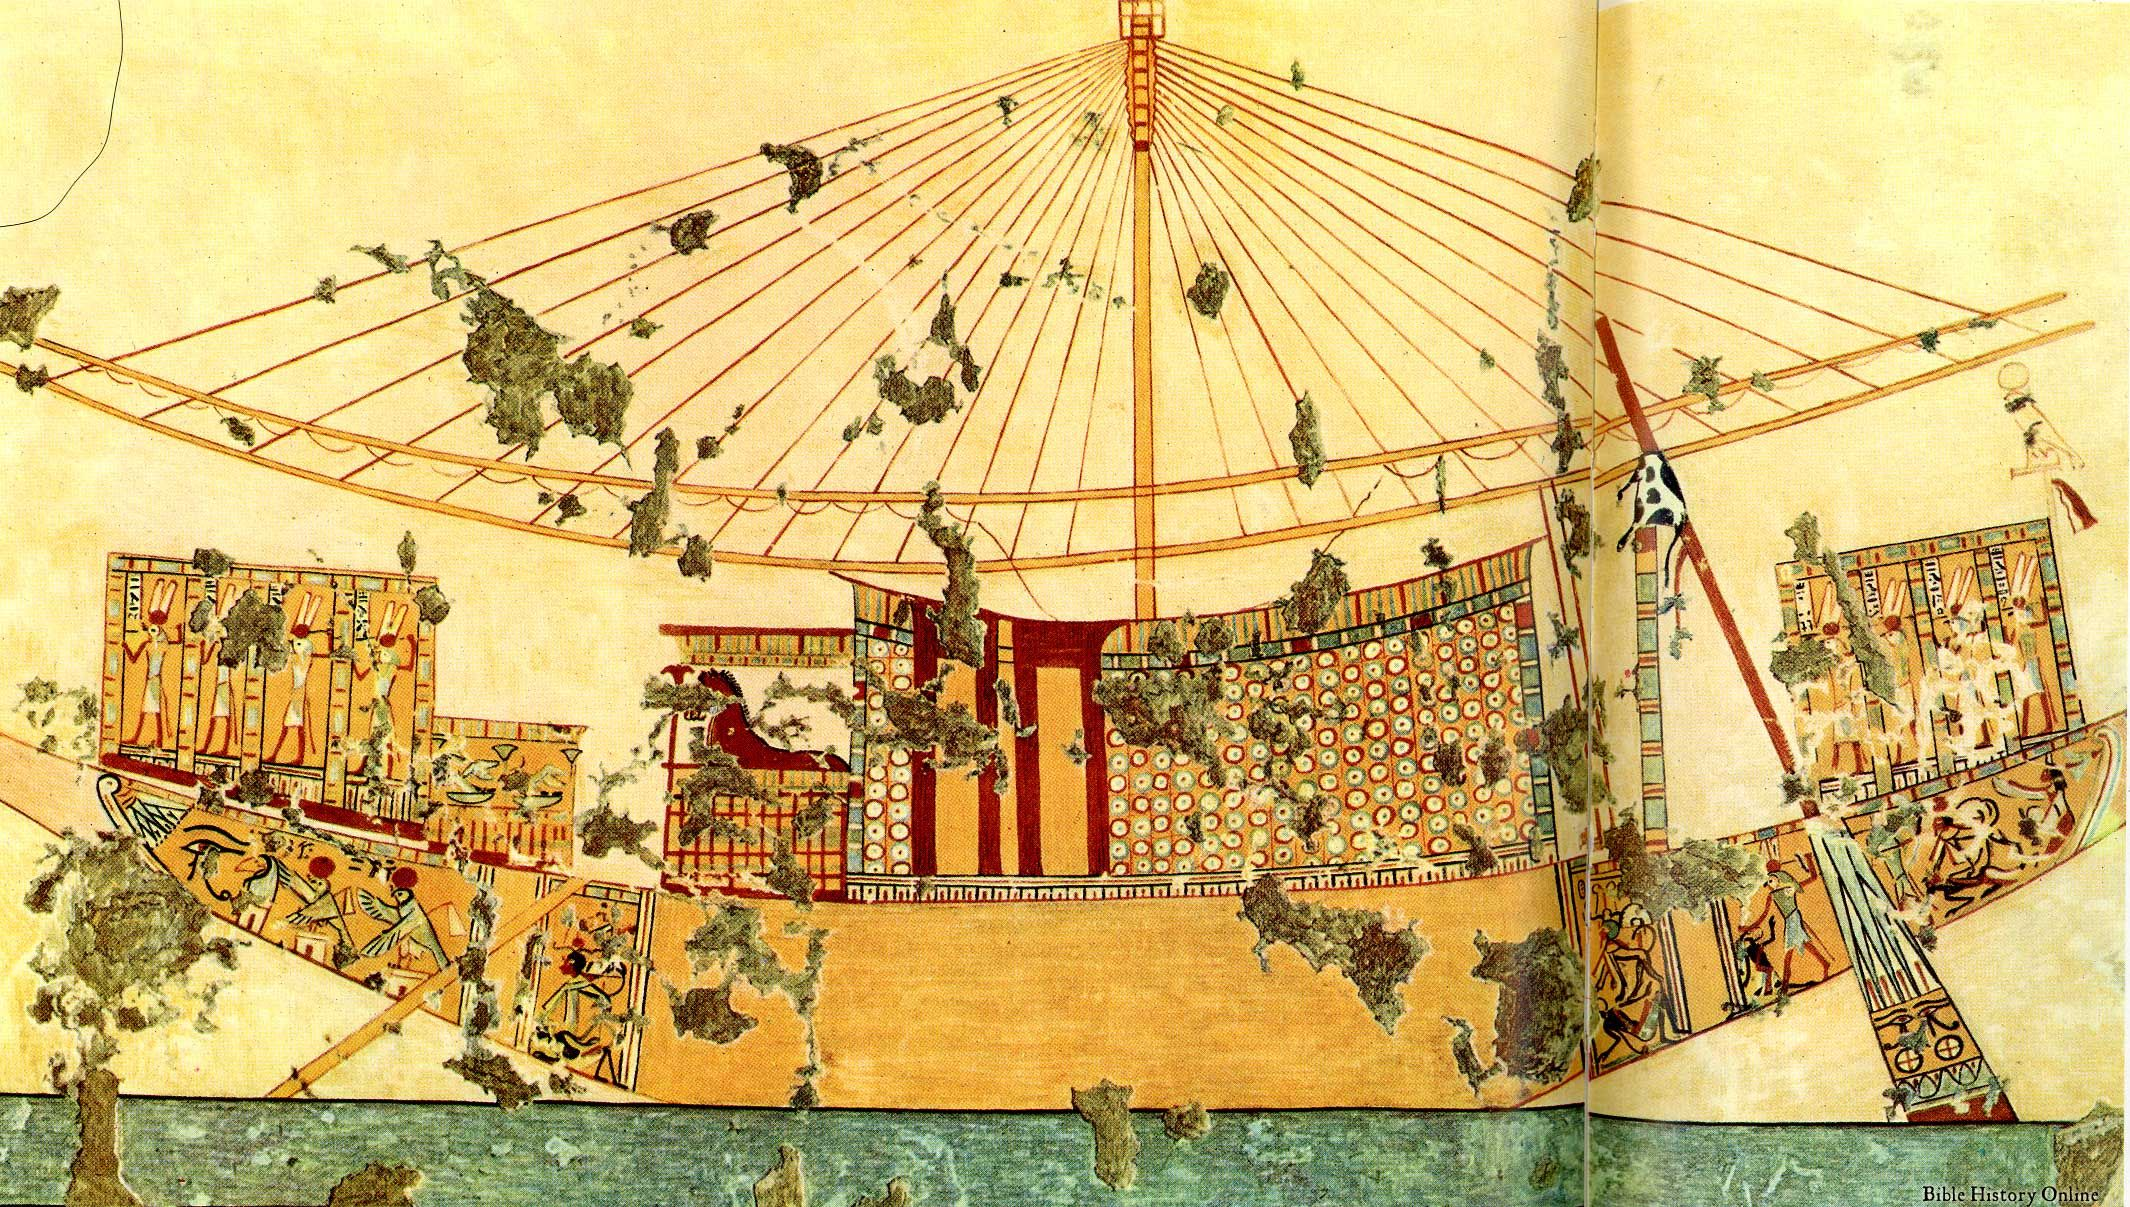 Egyptian Wall Painting of a Luxury Sailing Vessel | Ancient Egypt ...